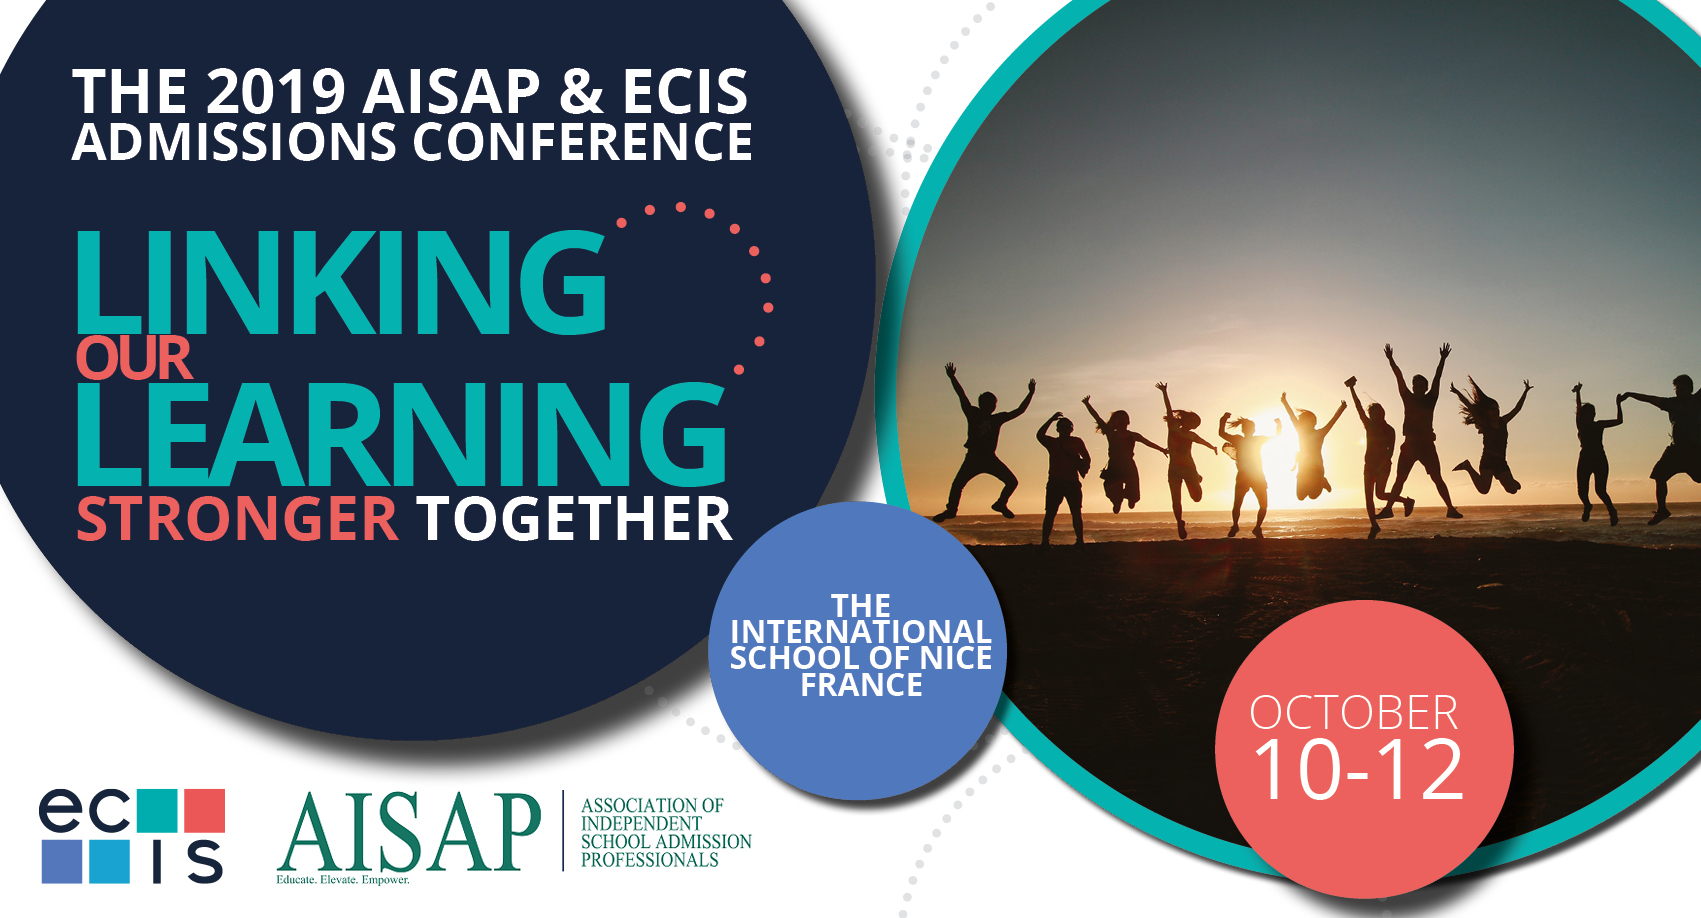 AISAP & ECIS Admissions Conference 2019